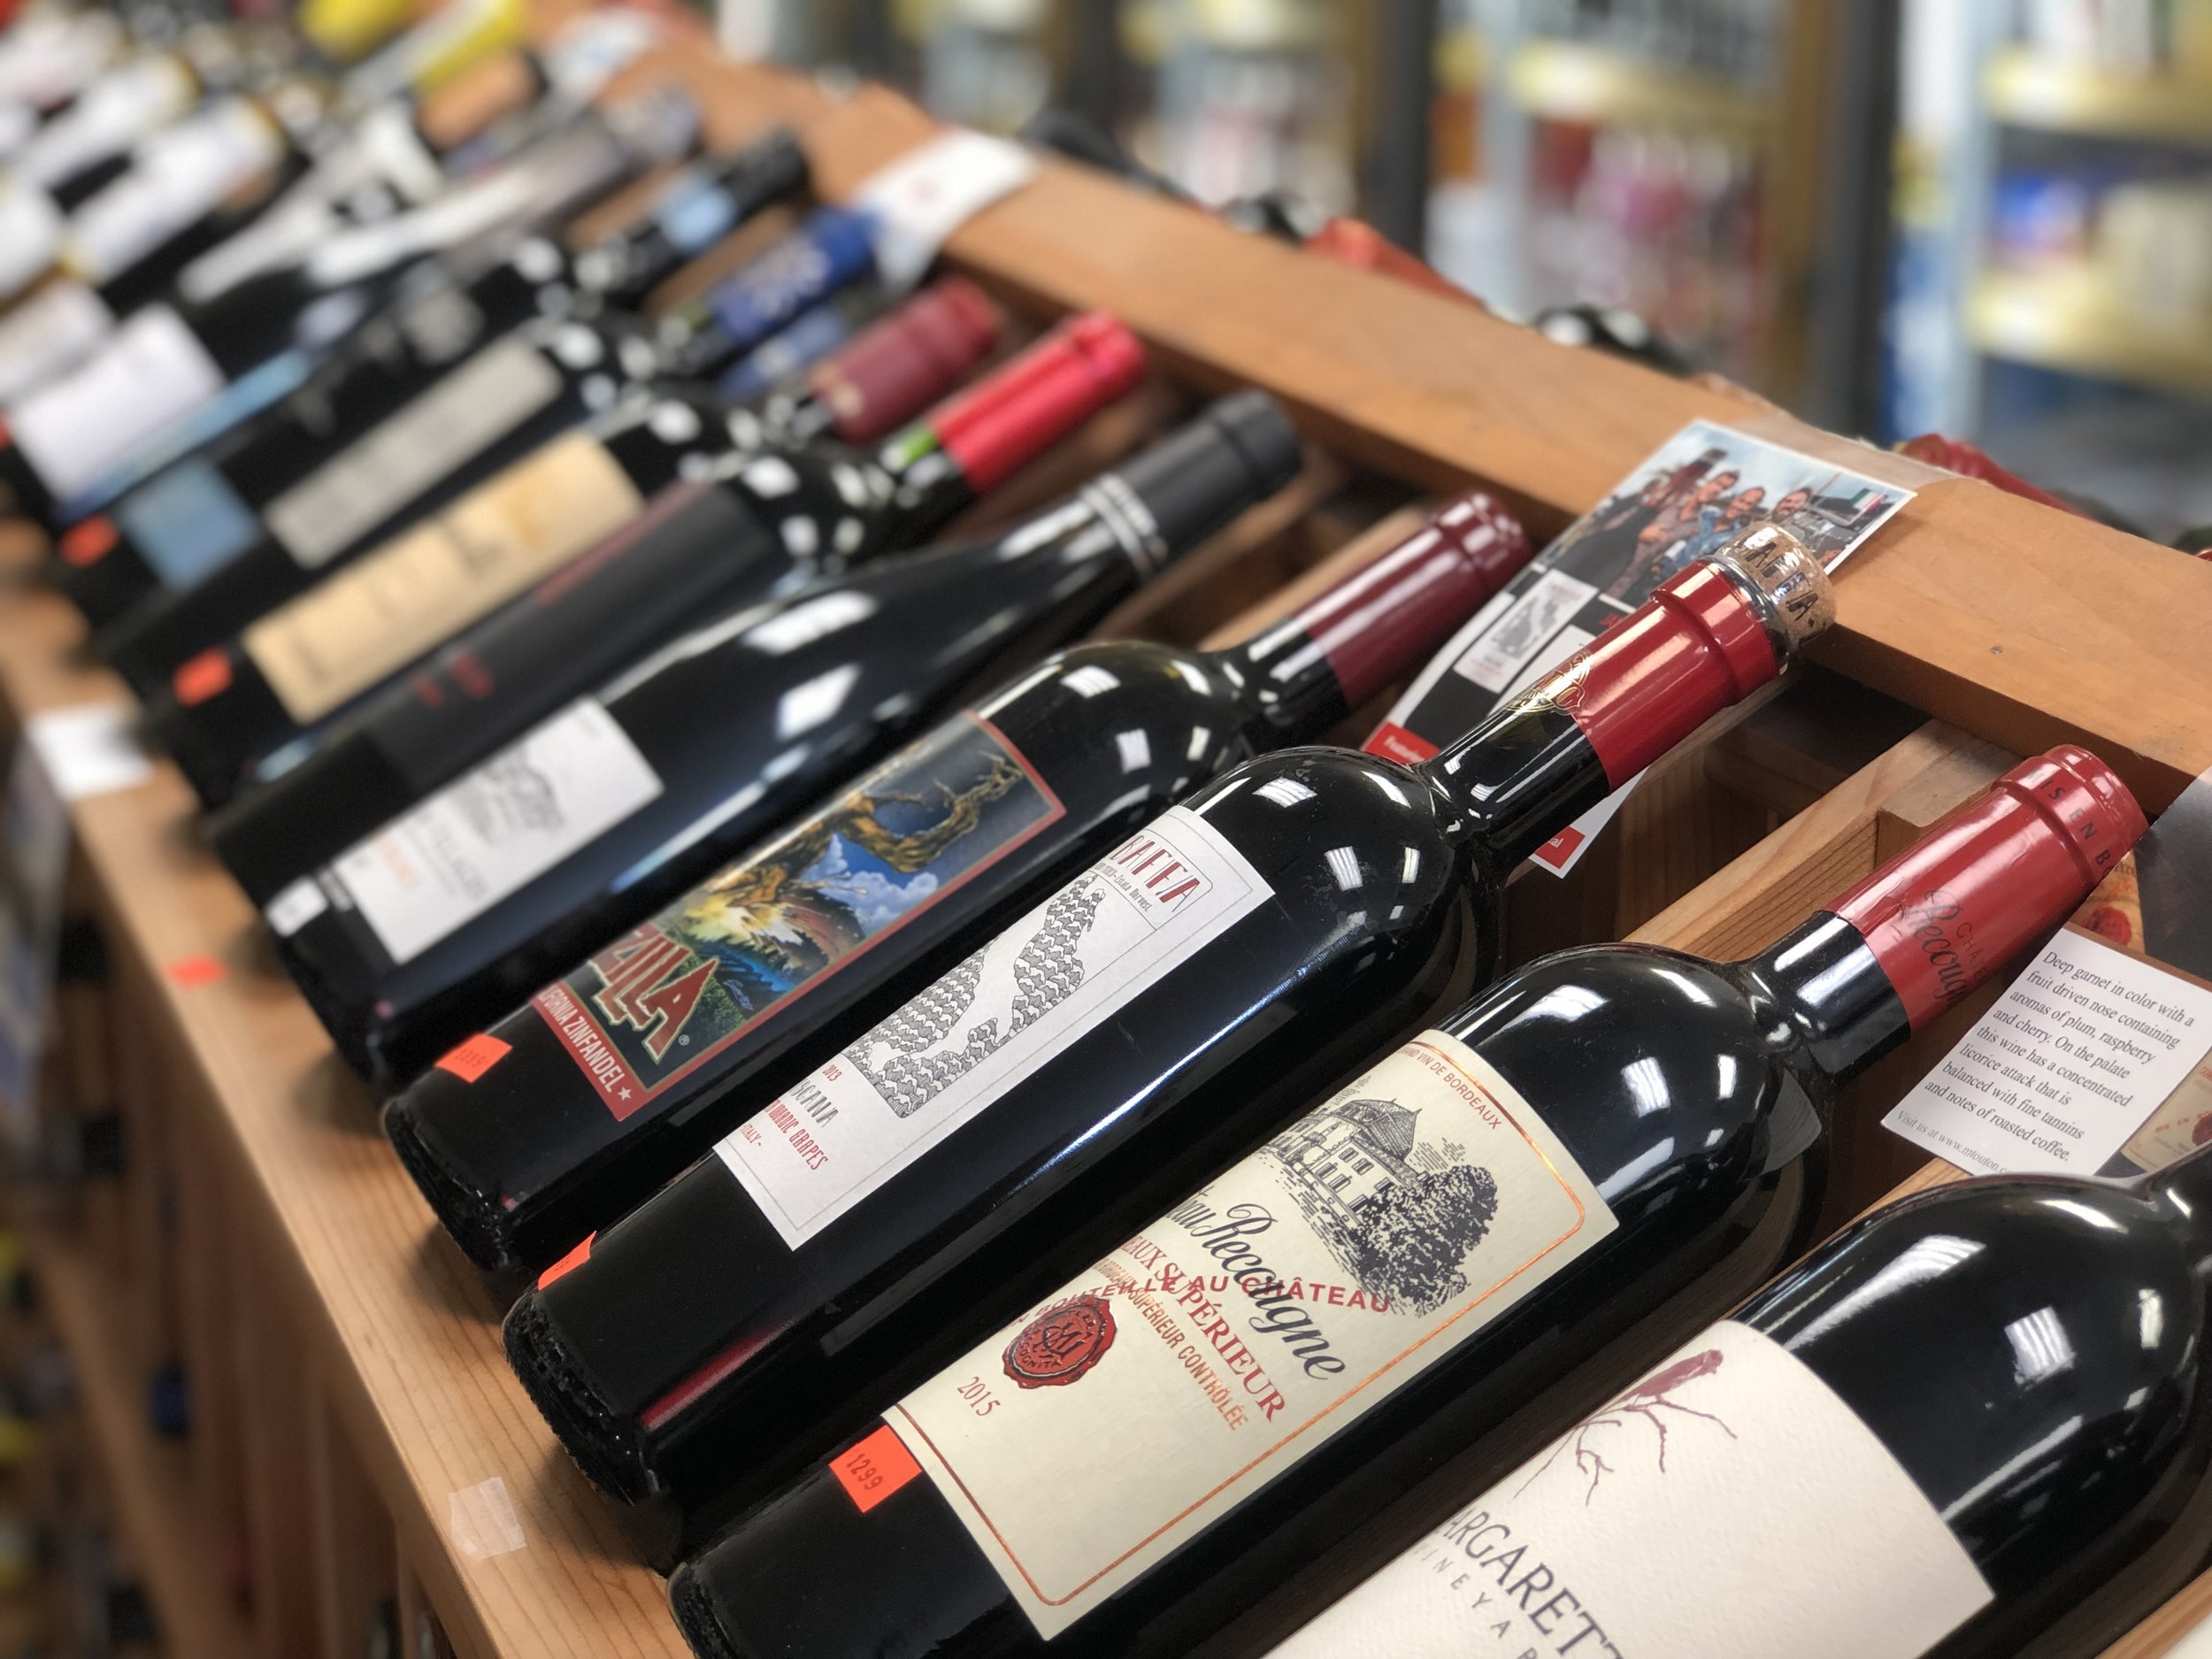 They have some really awesome wines from all around the world.